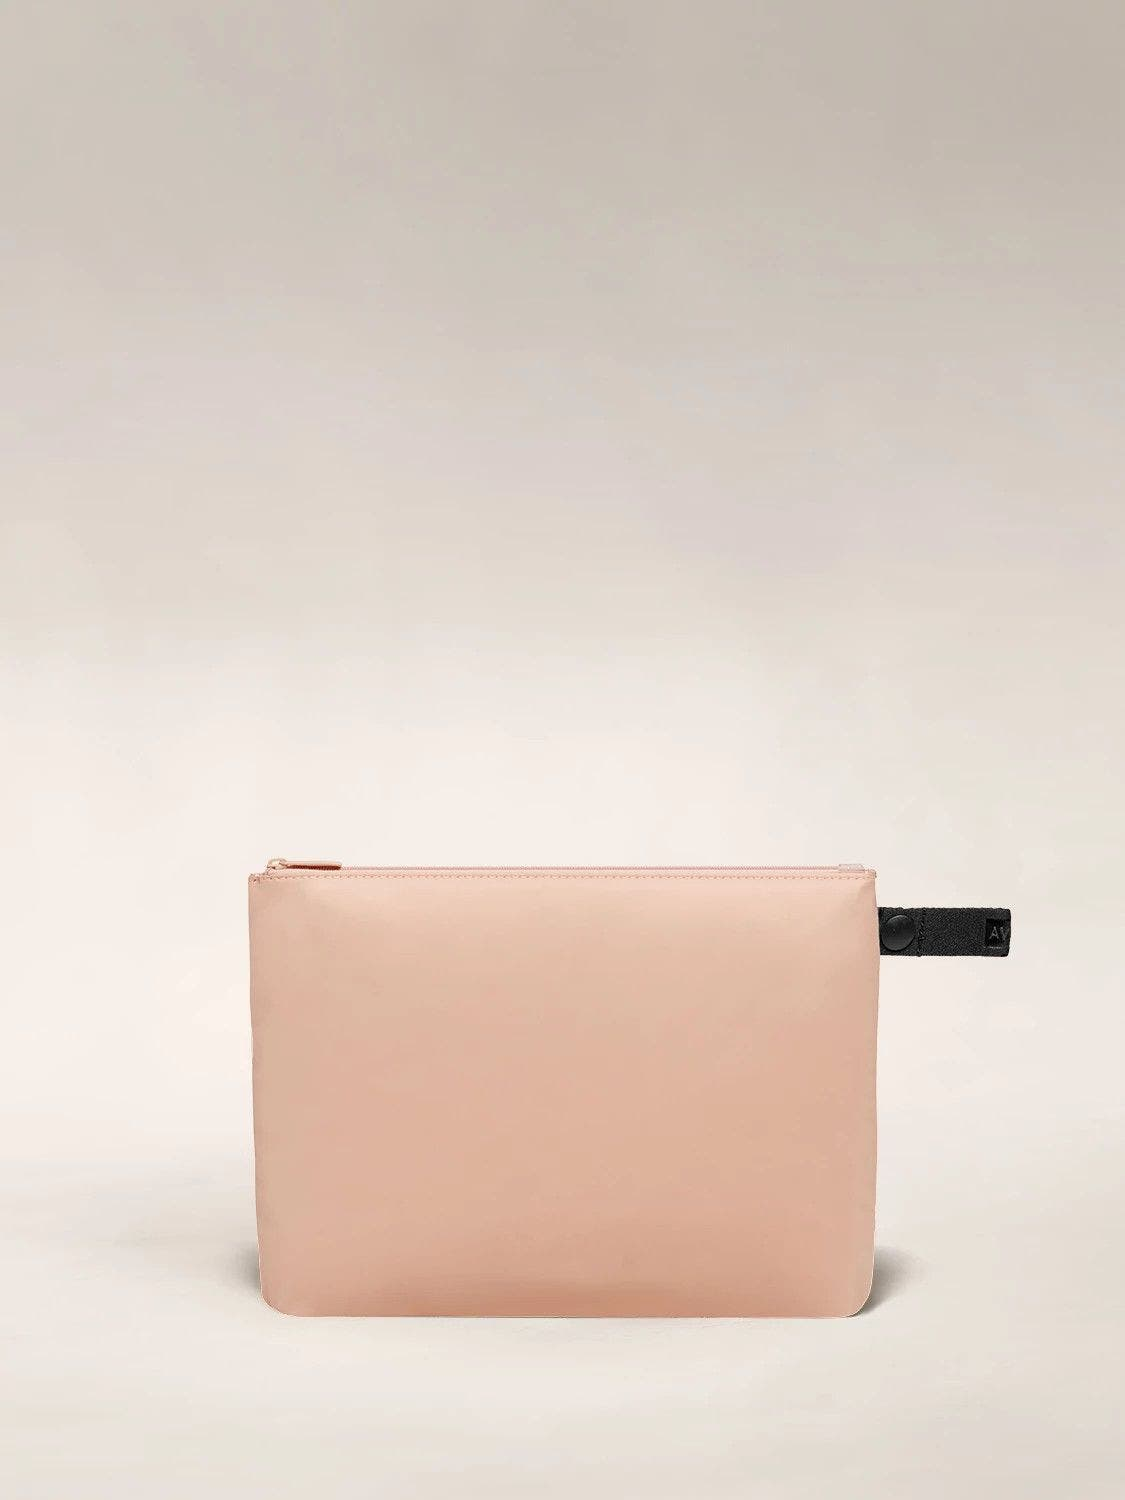 Front view of the Away large organizational travel pouch in the color petal pink